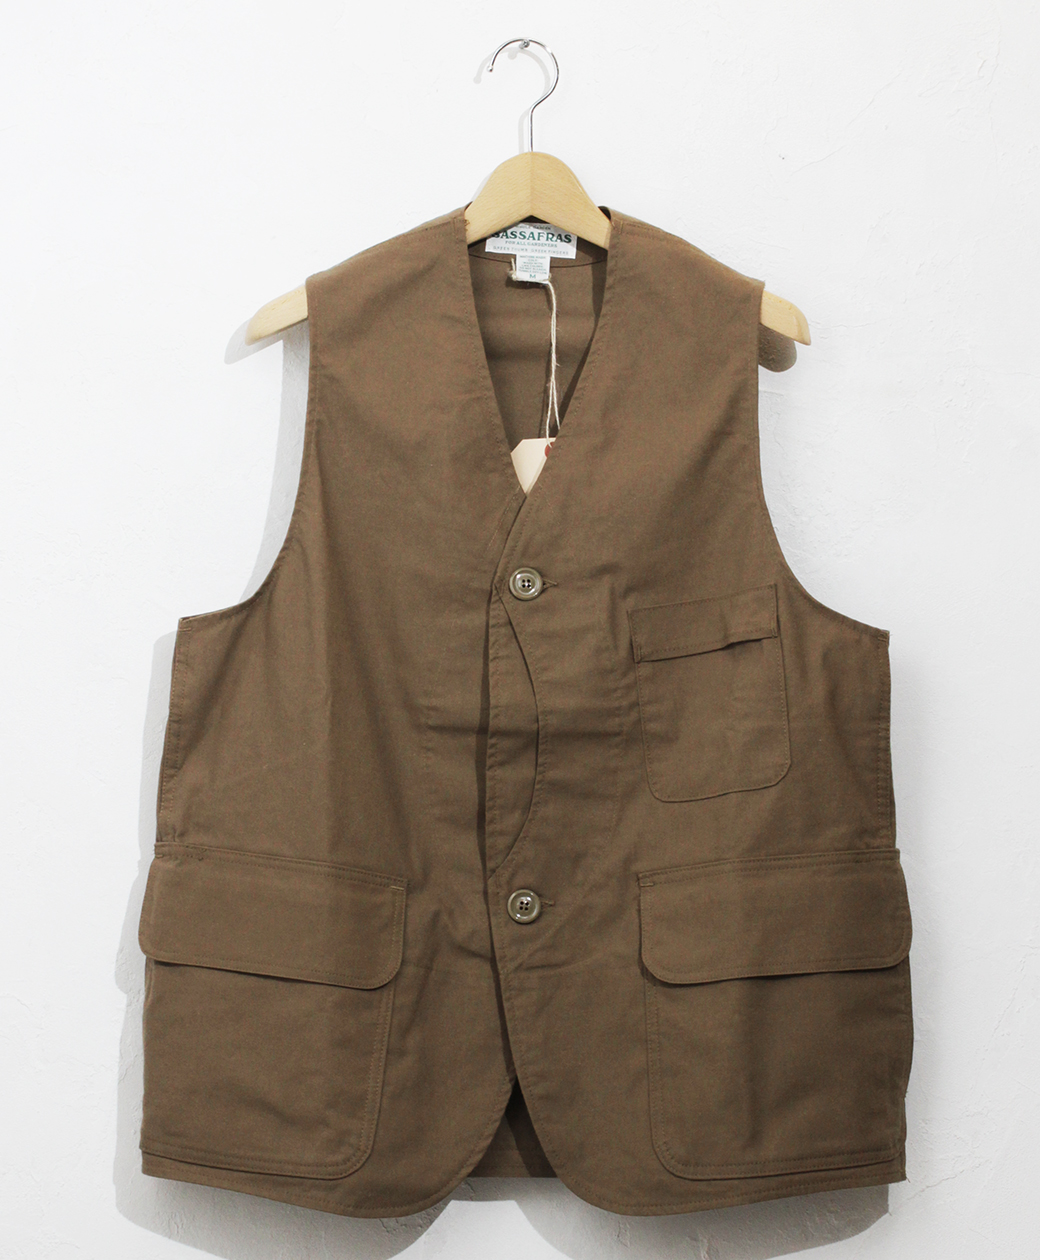 SASSAFRAS Garden Tough Vest(C/N Duck)